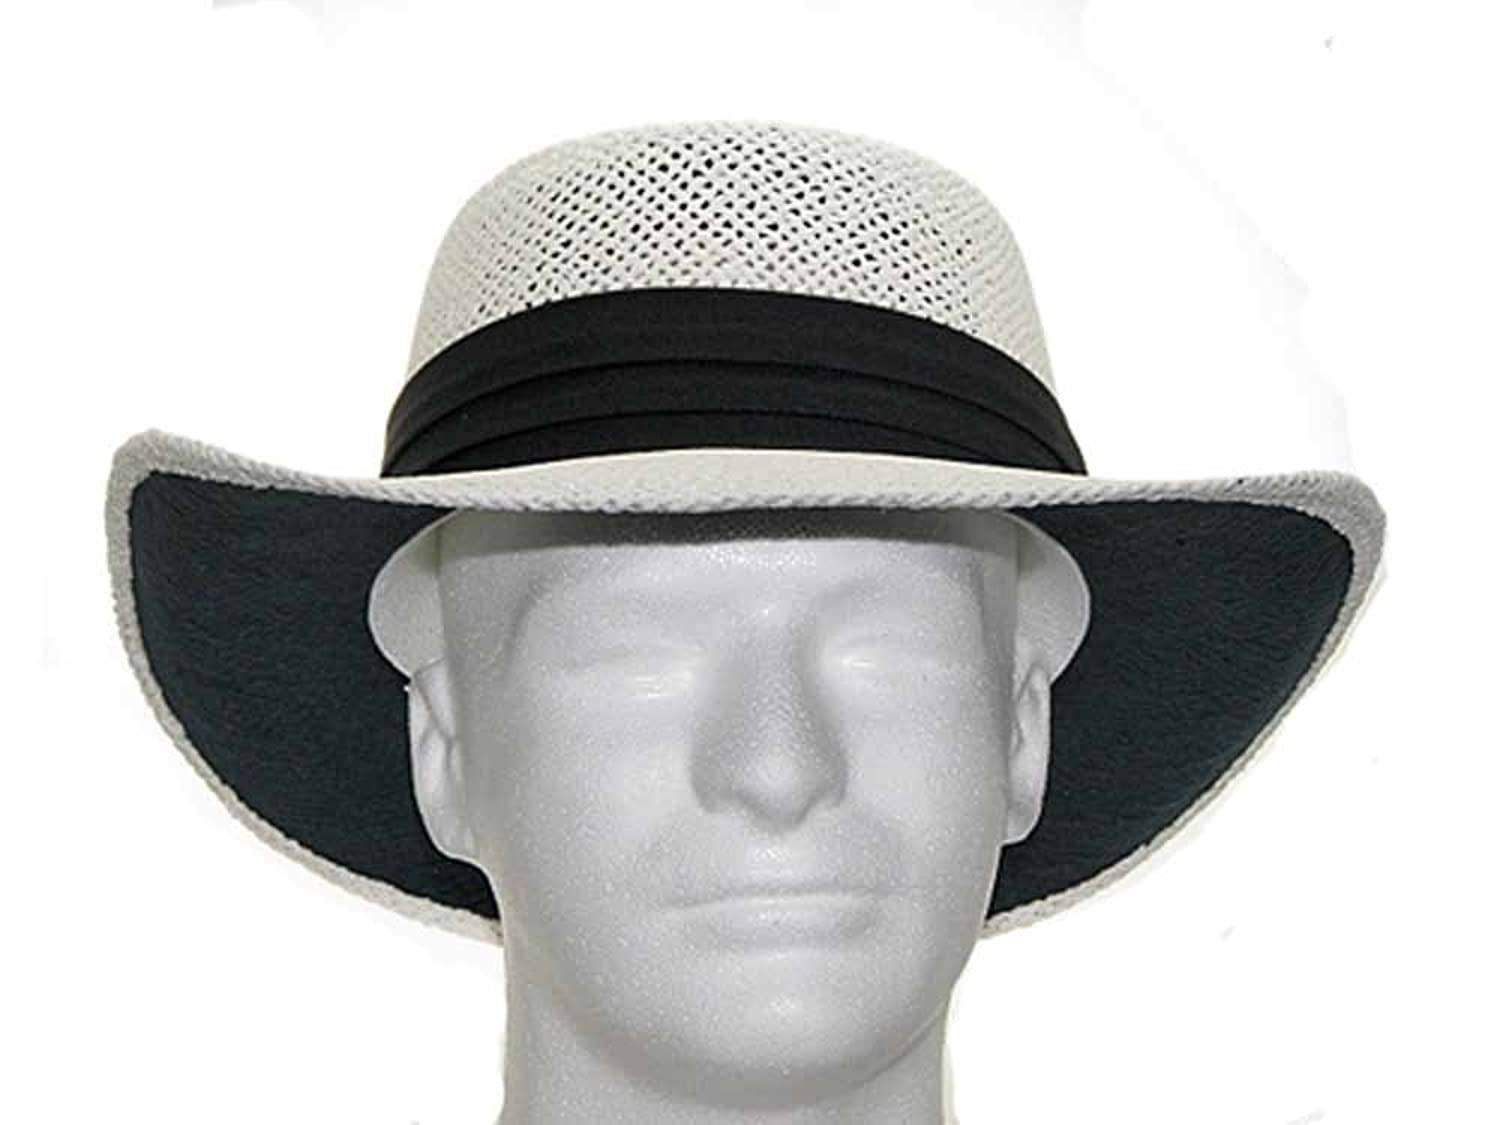 Gambler vented panama straw golf dress hat at amazon mens clothing gambler vented panama straw golf dress hat at amazon mens clothing store altavistaventures Image collections